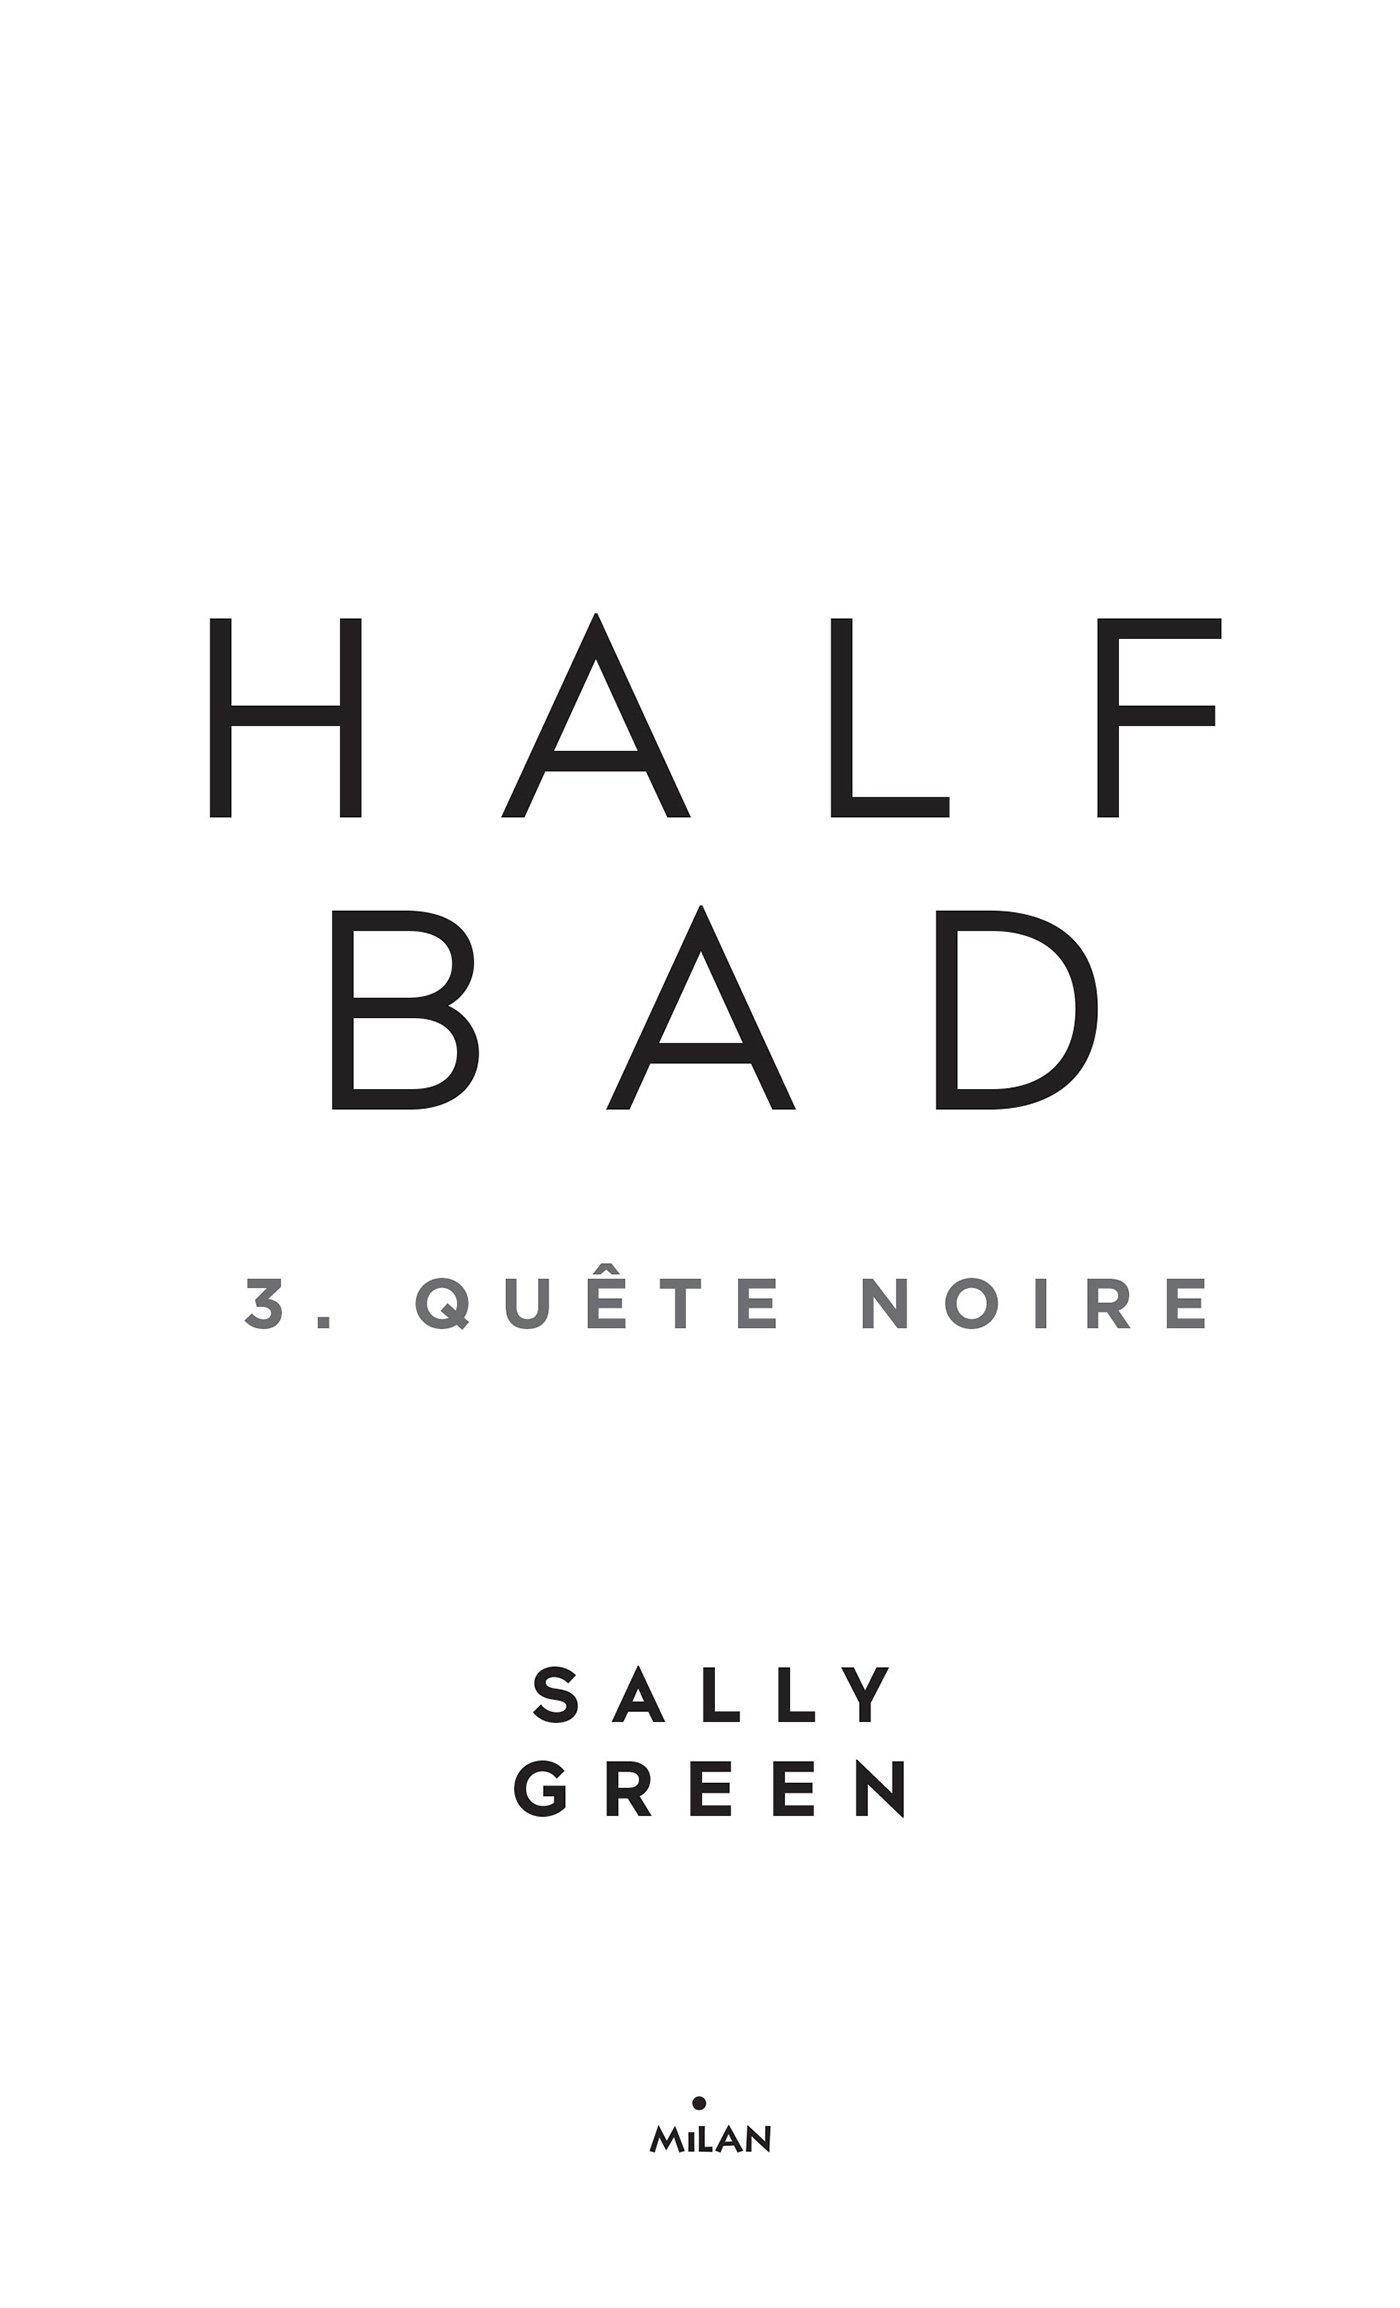 Page de titre : Green Sally, Half Bad, Milan